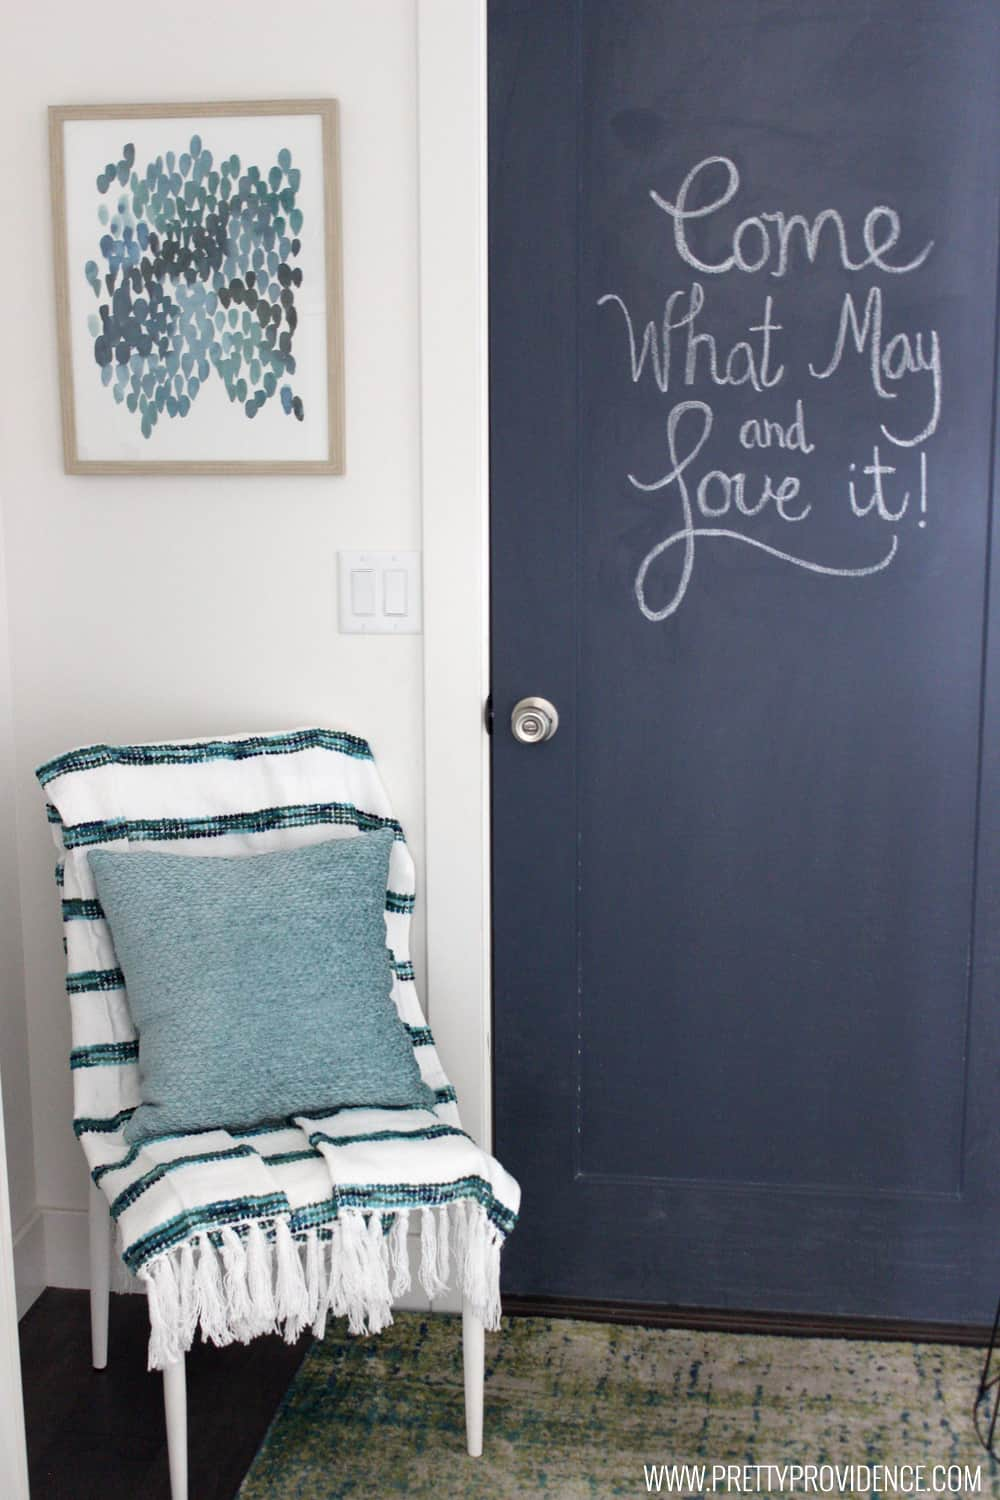 How to paint a chalkboard door! I love this super easy tutorial! So fun & How to Paint a Chalkboard Door